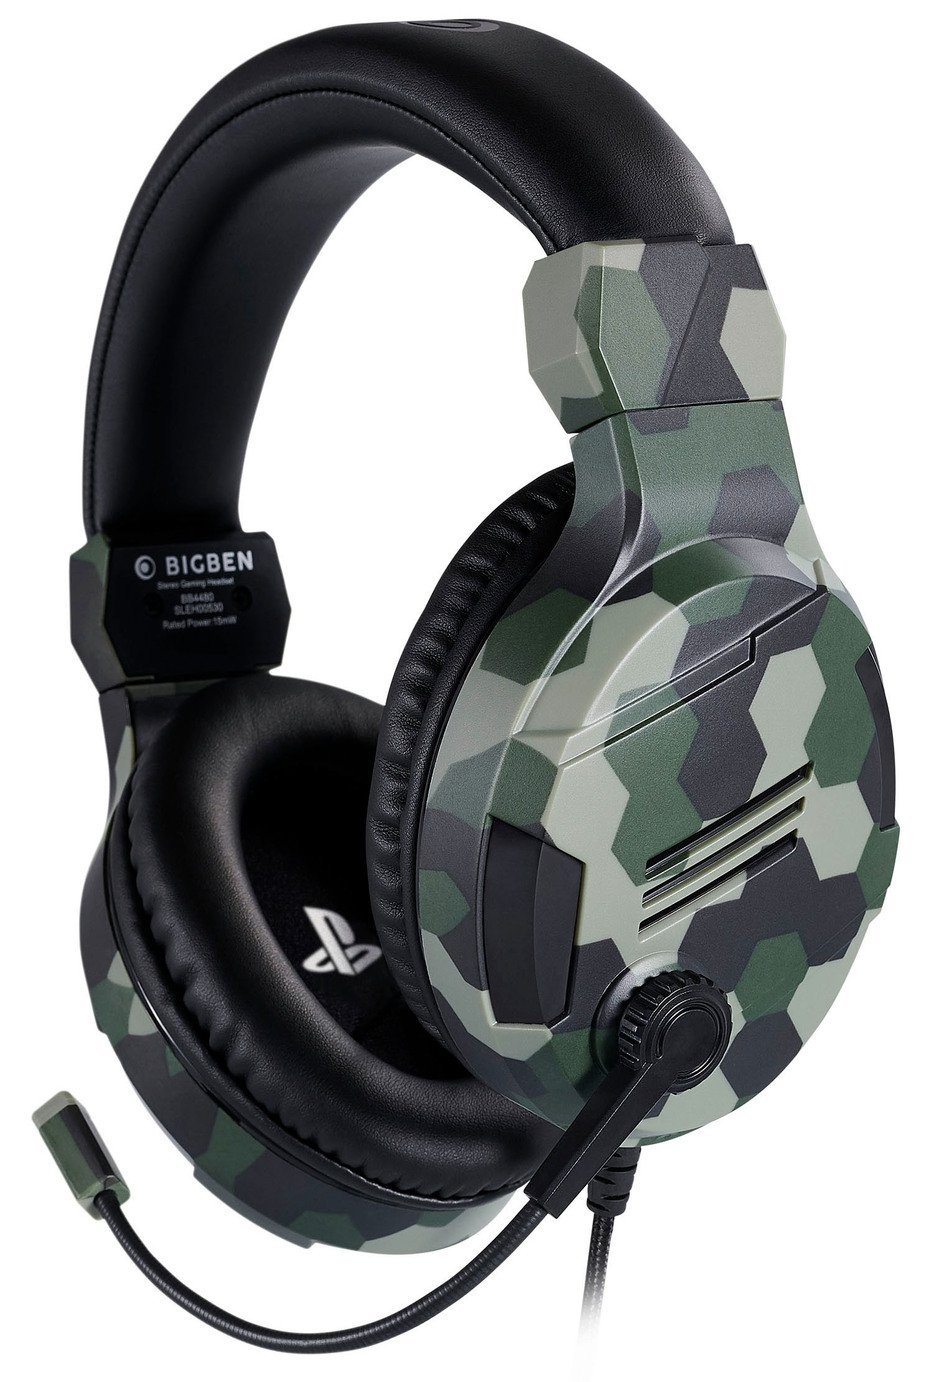 Official V3 PS4, PC Headset - Camo Green